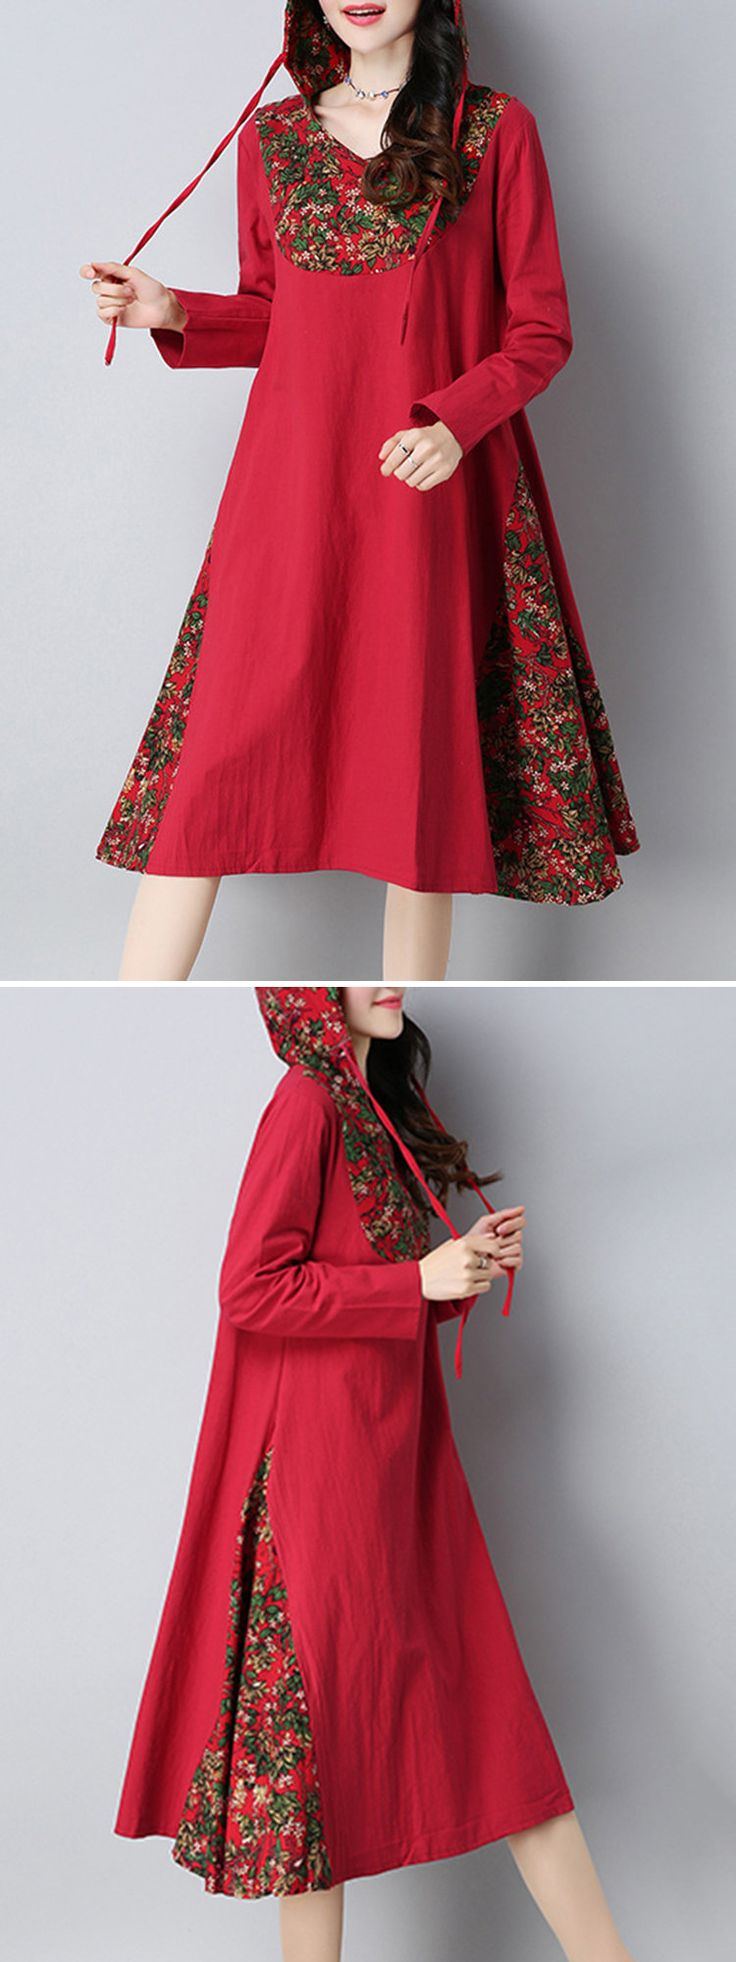 O-NEWE Patchwork Printed Hooded Long Sleeves Dresses For Women